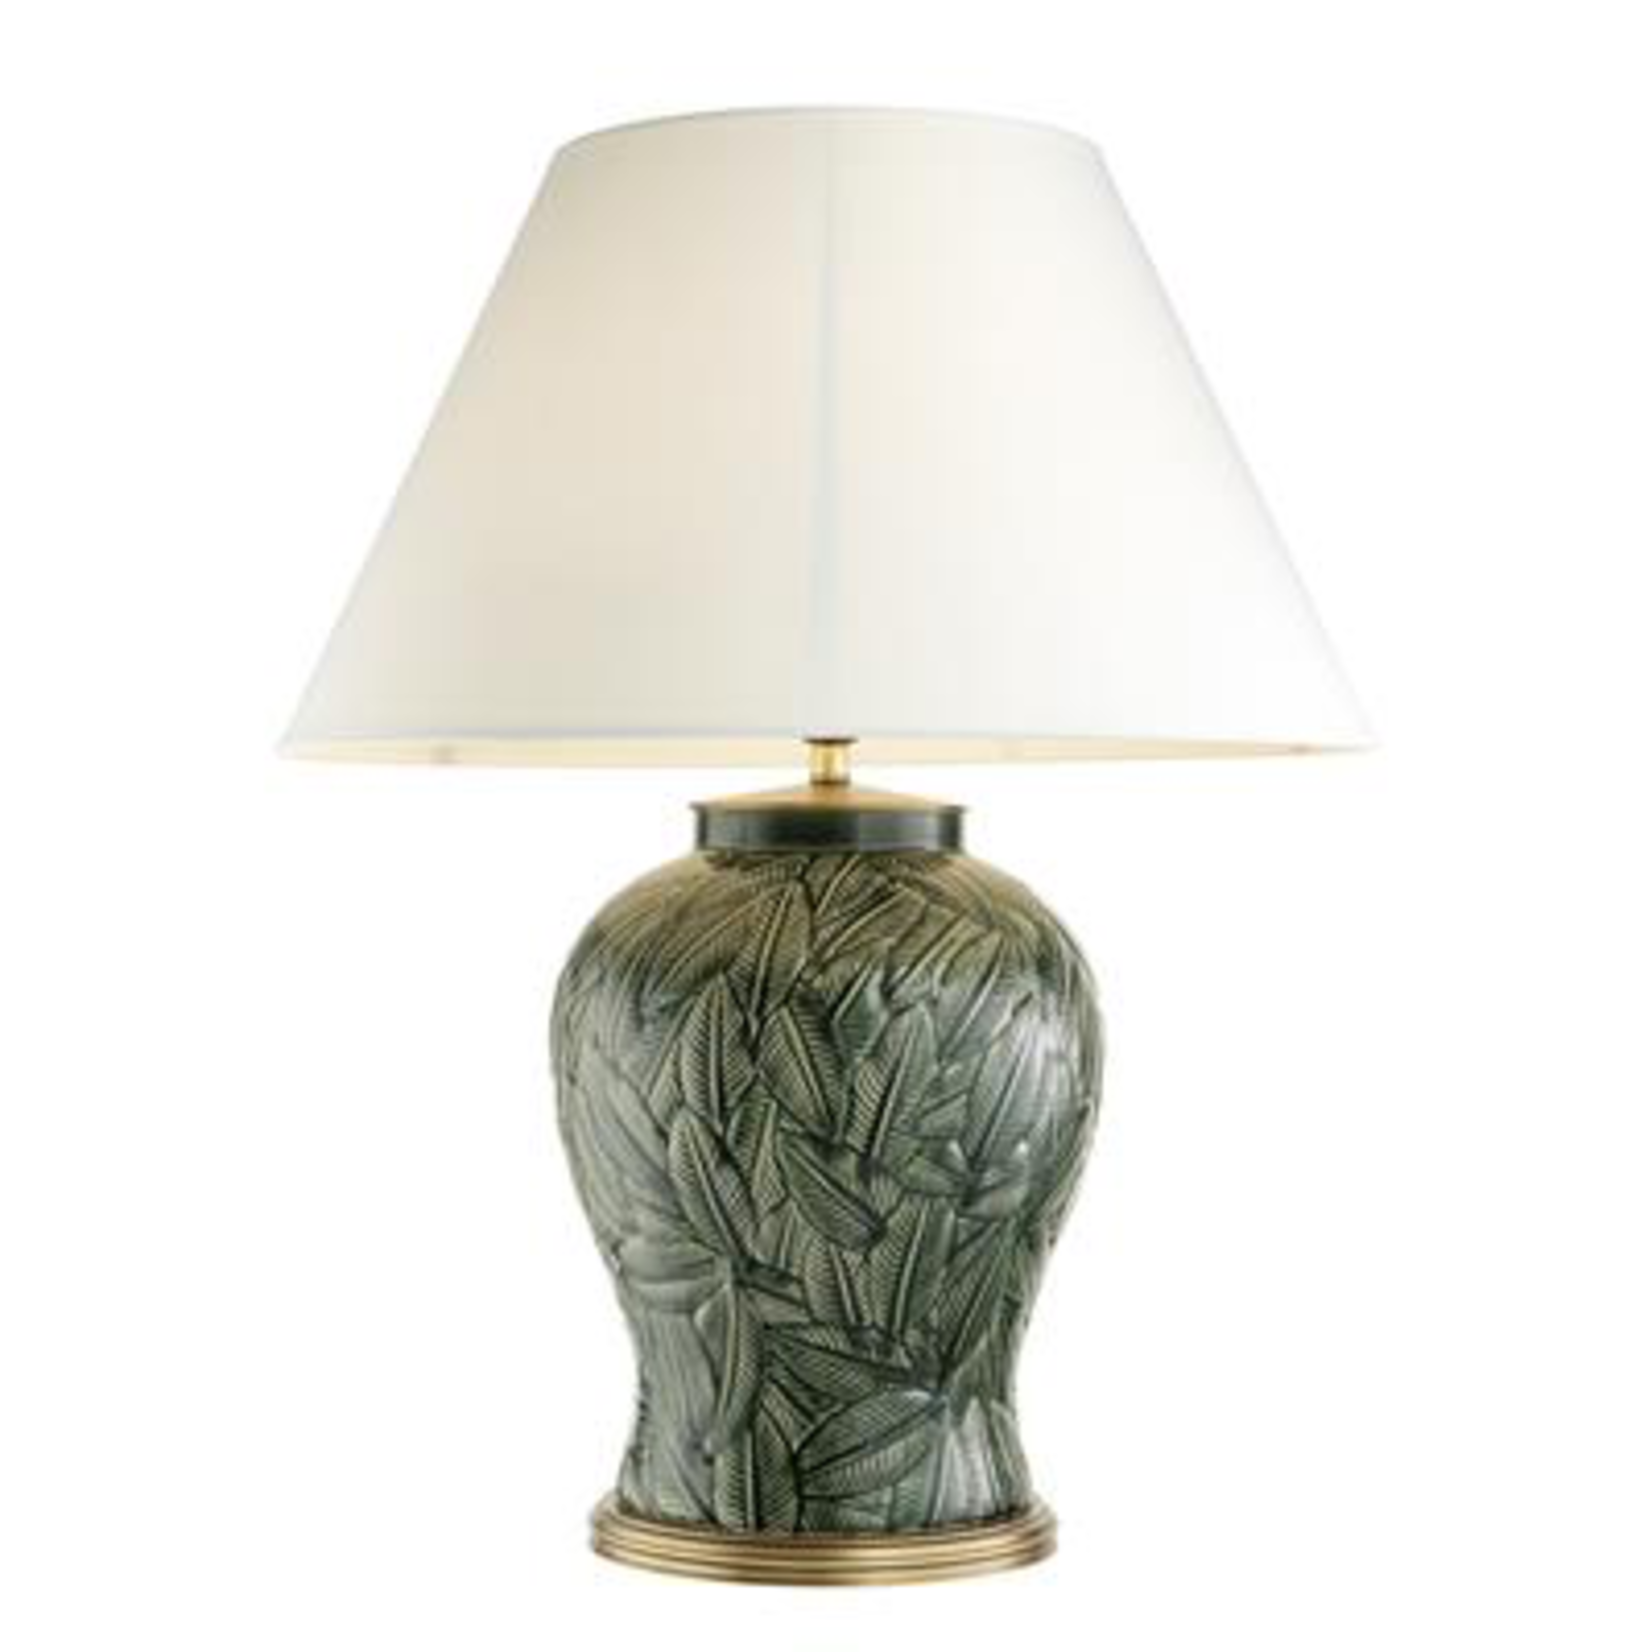 EICHHOLTZ TABLE LAMP CYPRUS GREEN CERAMIC INCLUDING SHADE